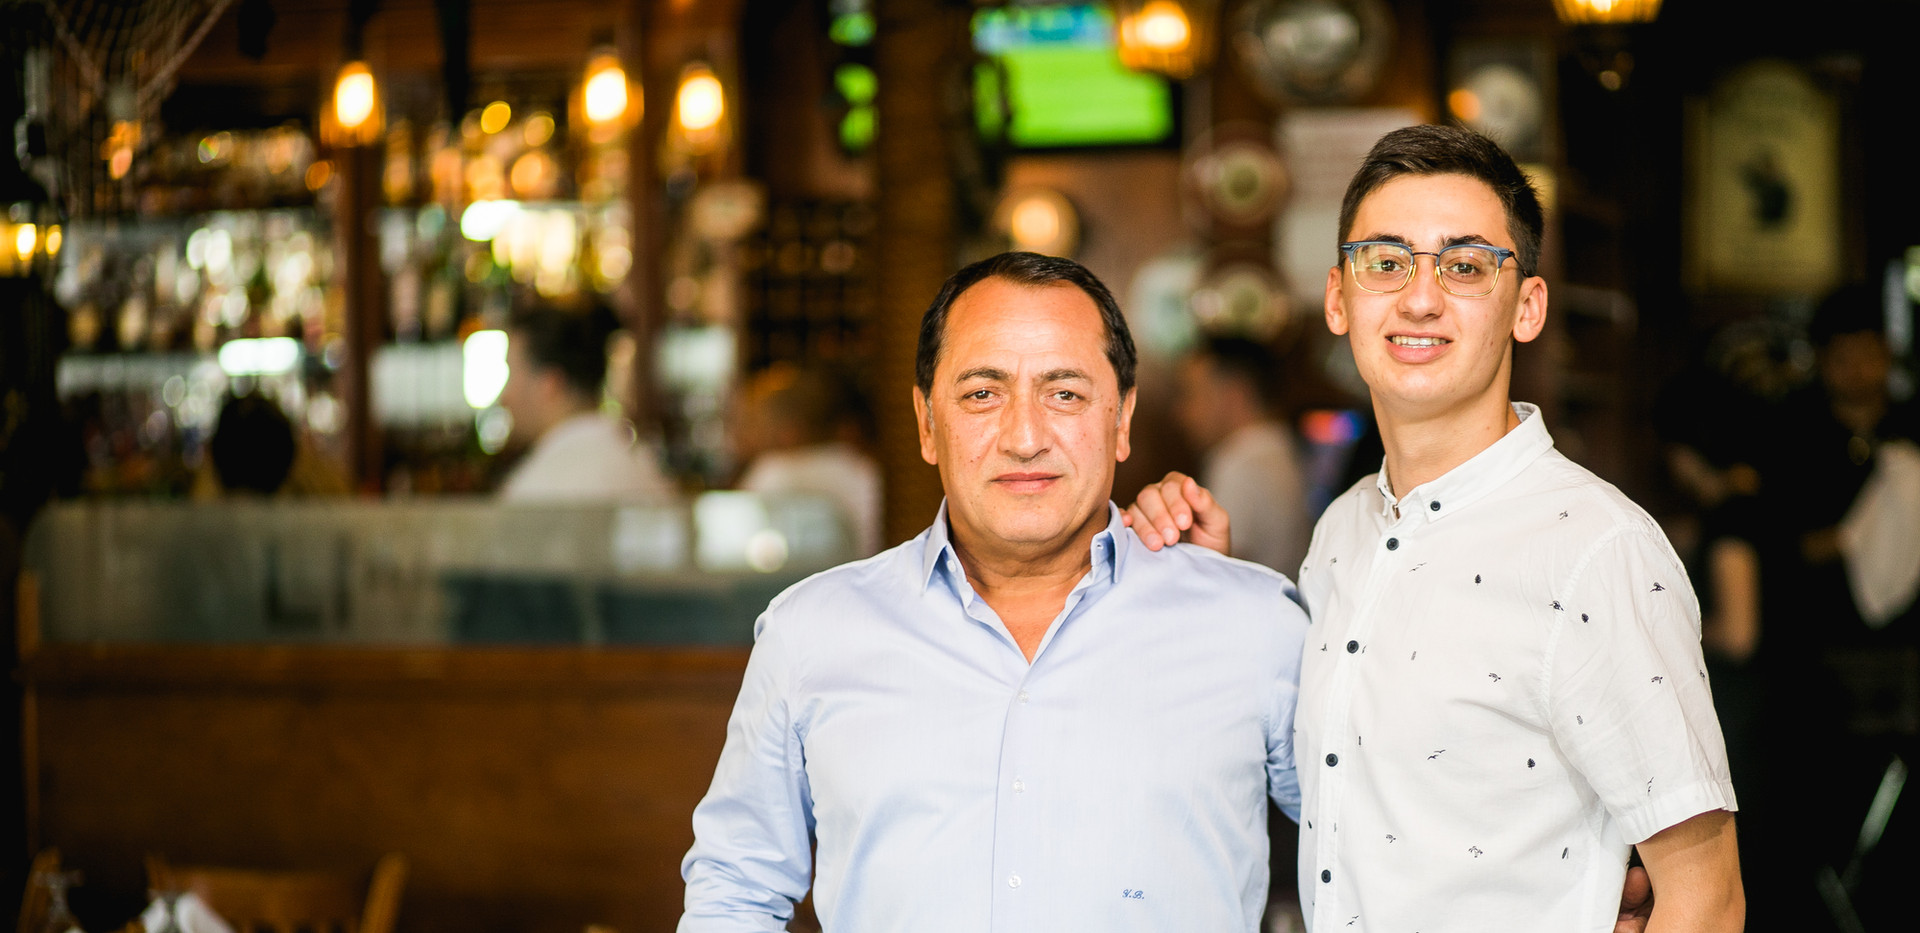 Liman Restaurant Owner with Son